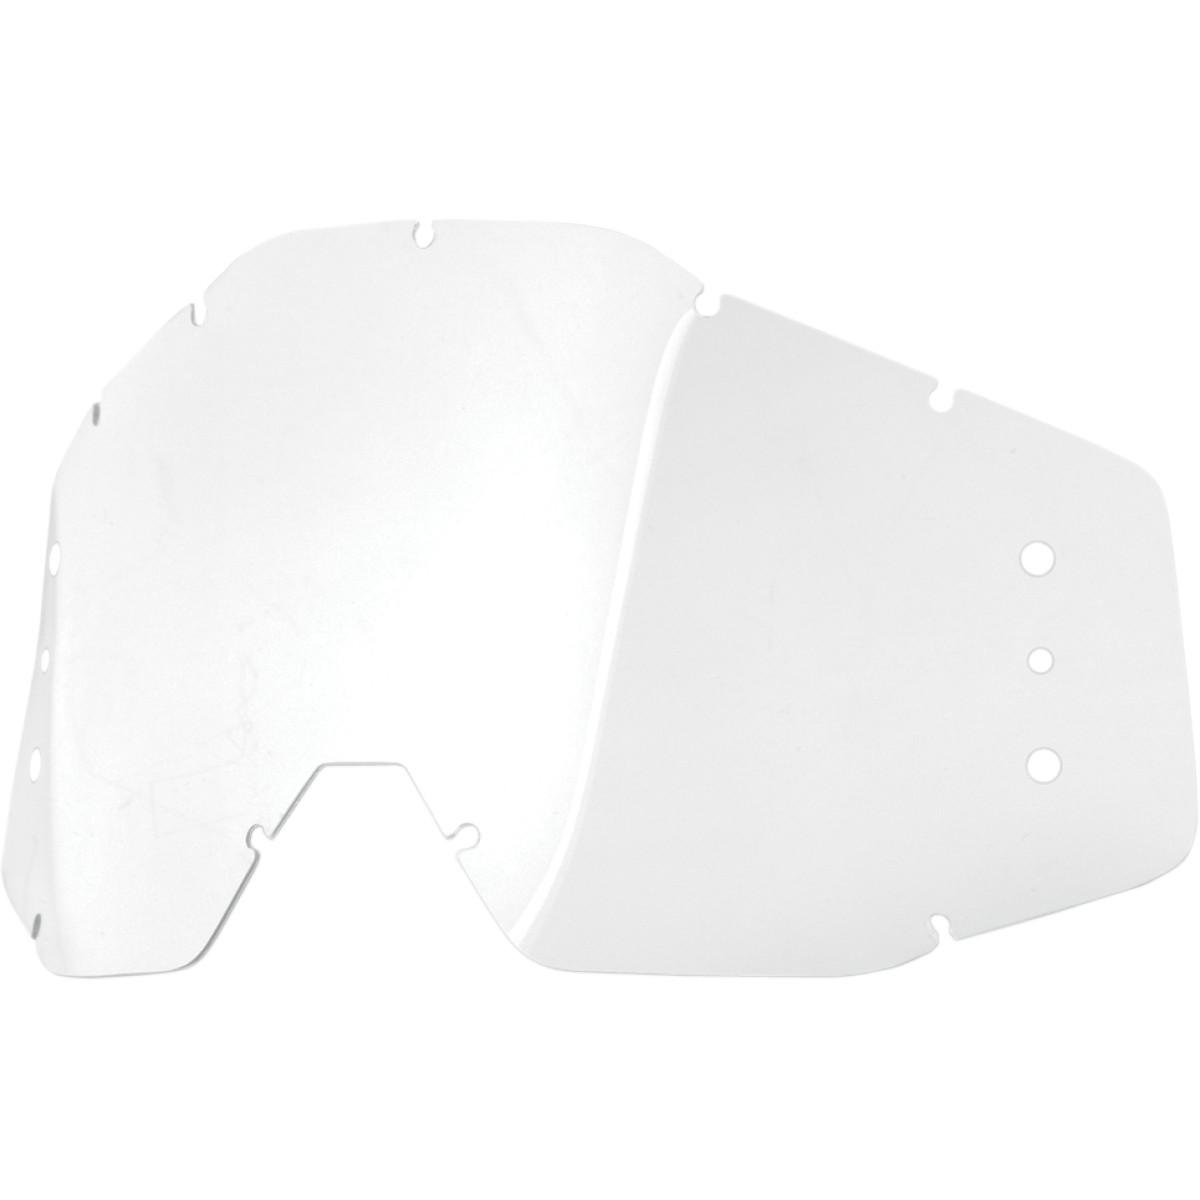 100% Percent Accuri/Strada Goggle Replacement Lens - 51021 Free Size 51021-010-02